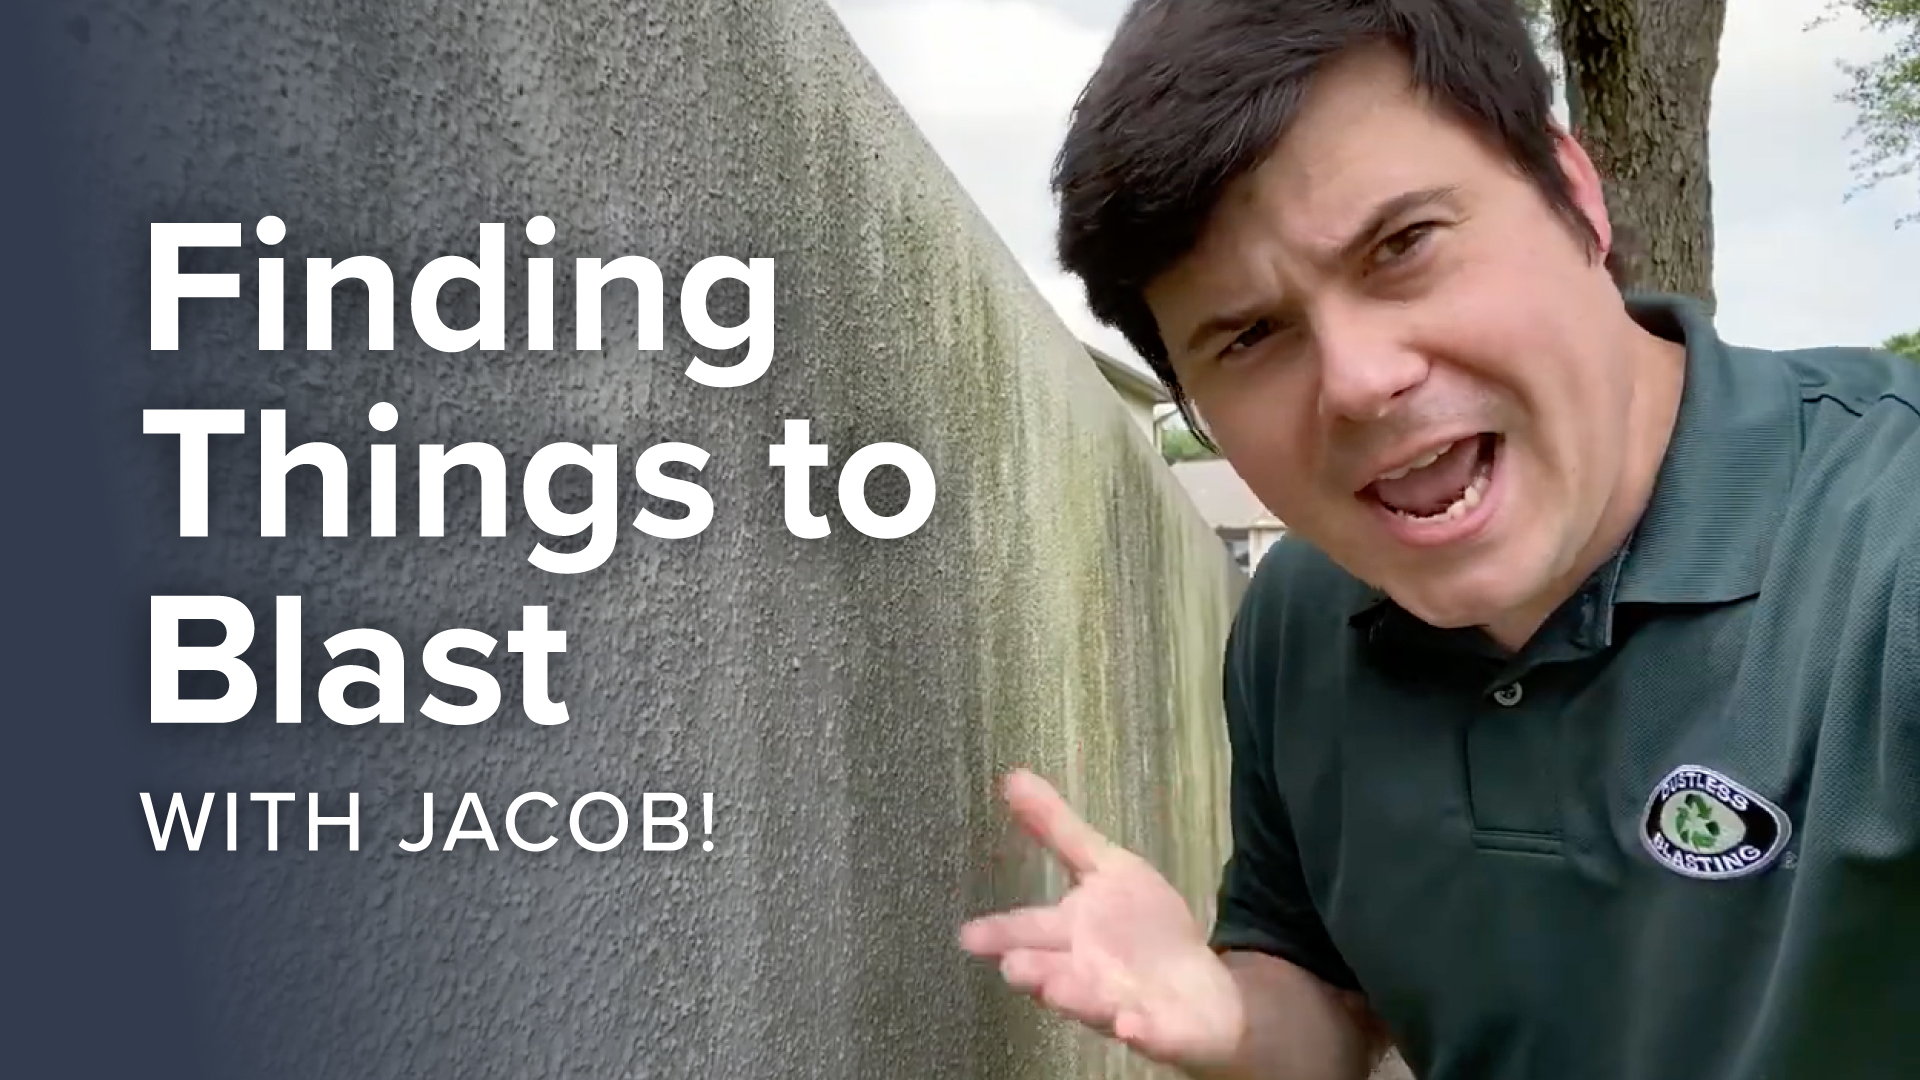 Finding-Things-to-Blast-with-Jacob!-thumbnail-words